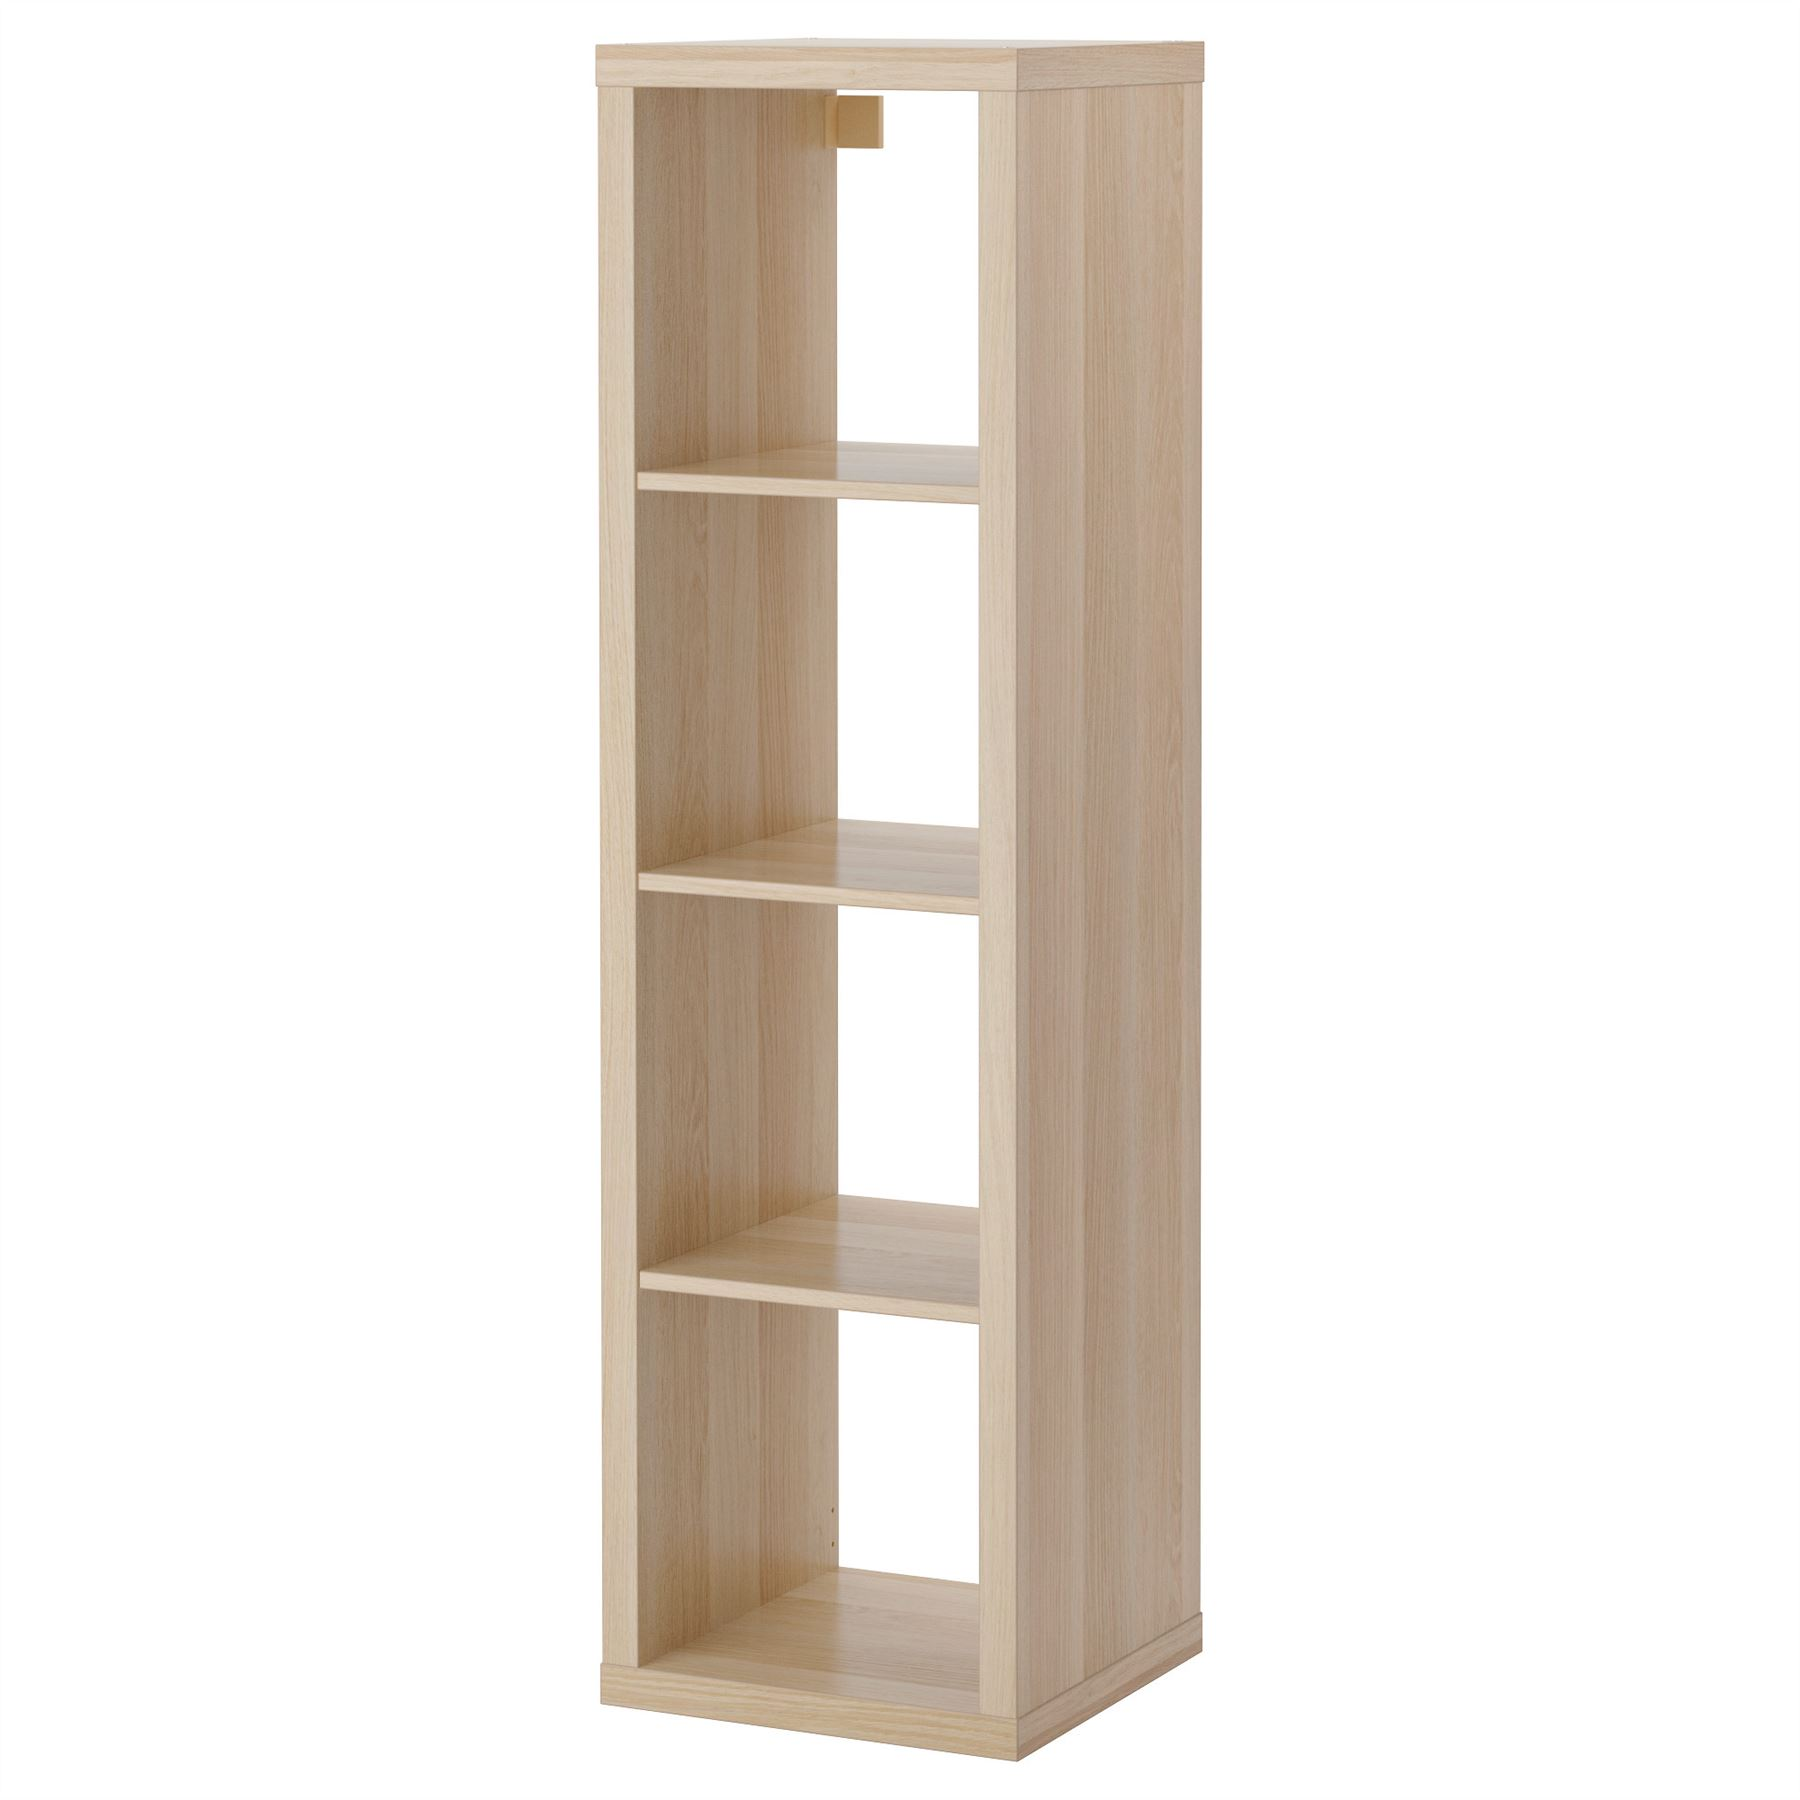 Ikea kallax 4 cube storage bookcase rectangle shelving - Mobile ikea cubi ...